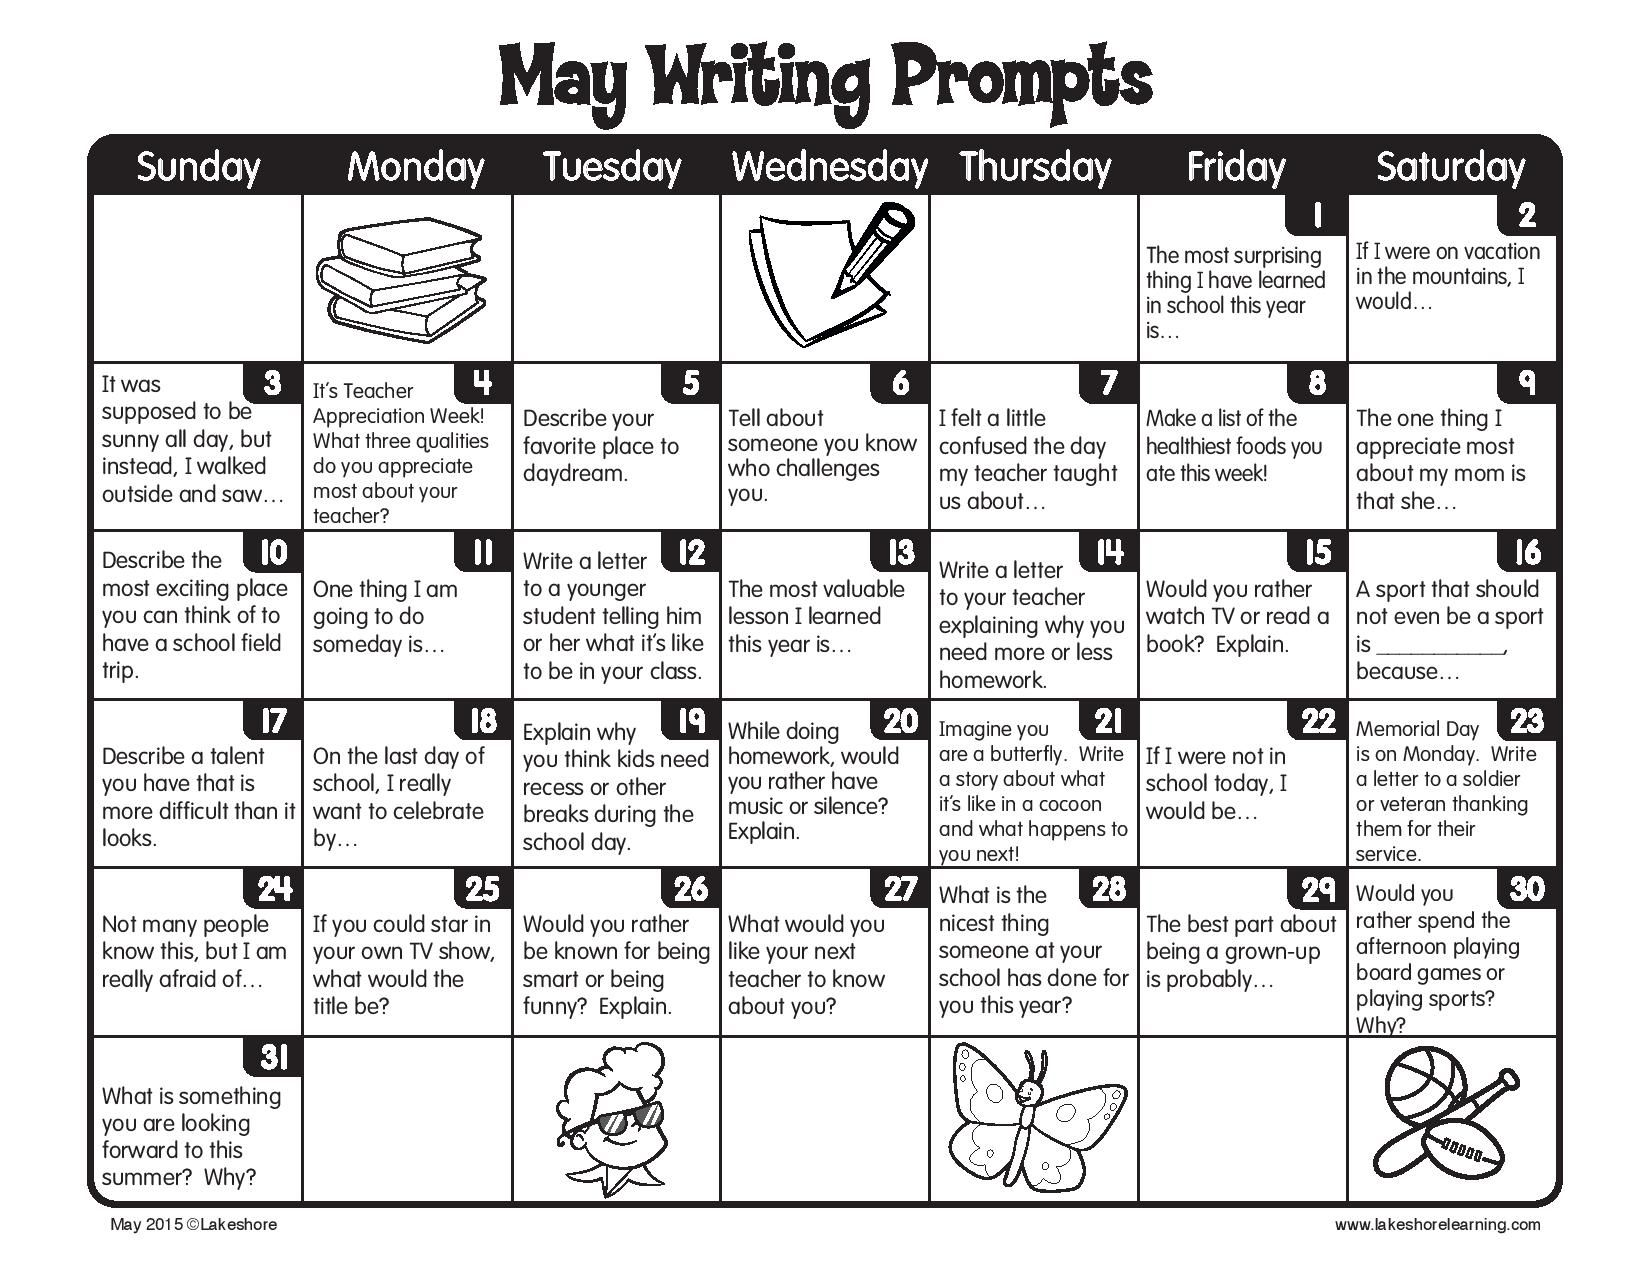 May writing prompts | Summer writing prompts, Elementary writing ...